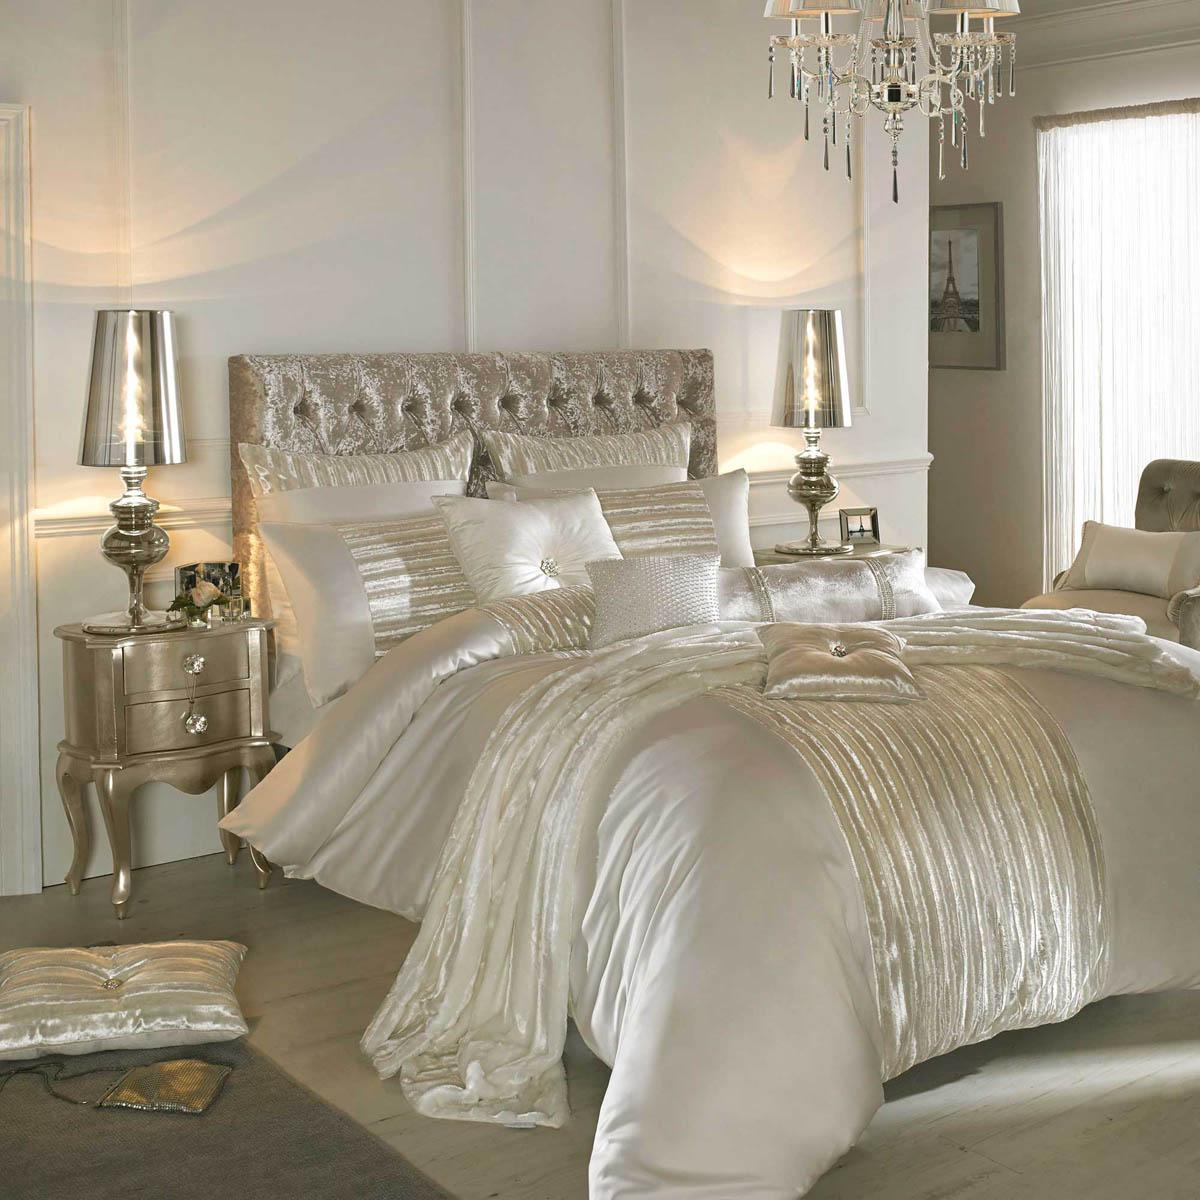 Kylie Minogue Luette Bedding Oyster Free UK Delivery